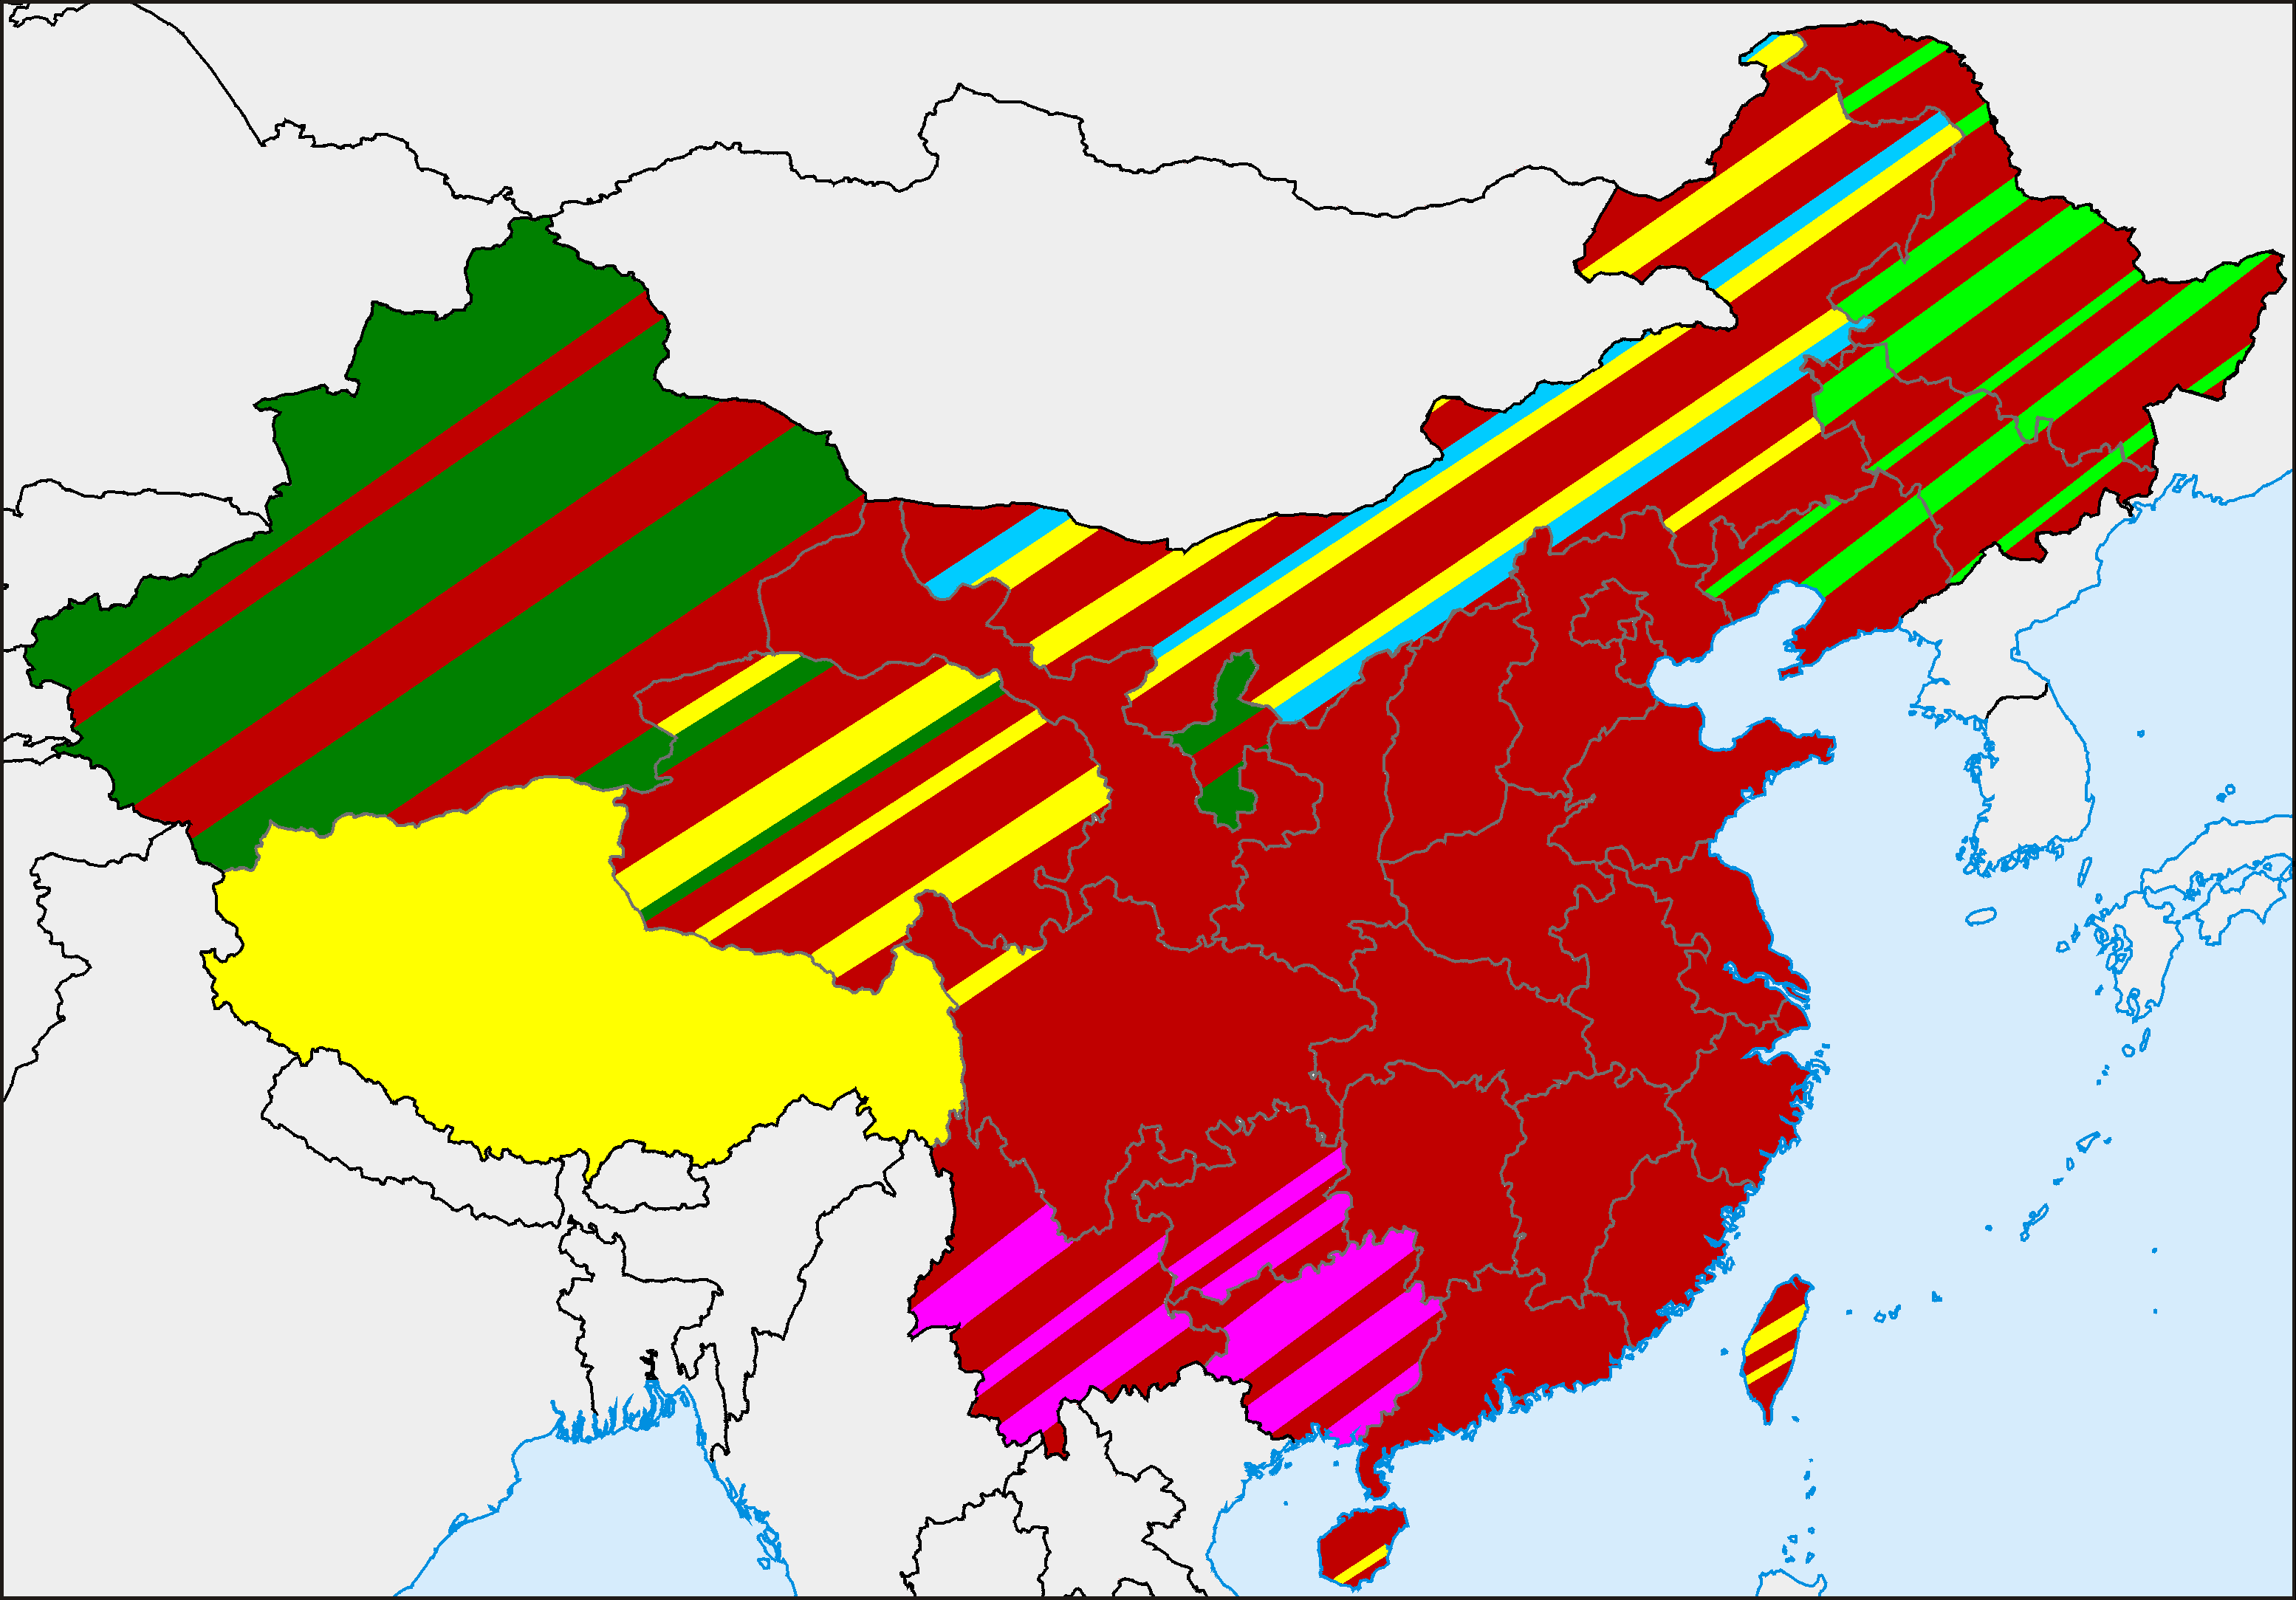 FileDistribution of religions in Chinapng Wikimedia Commons